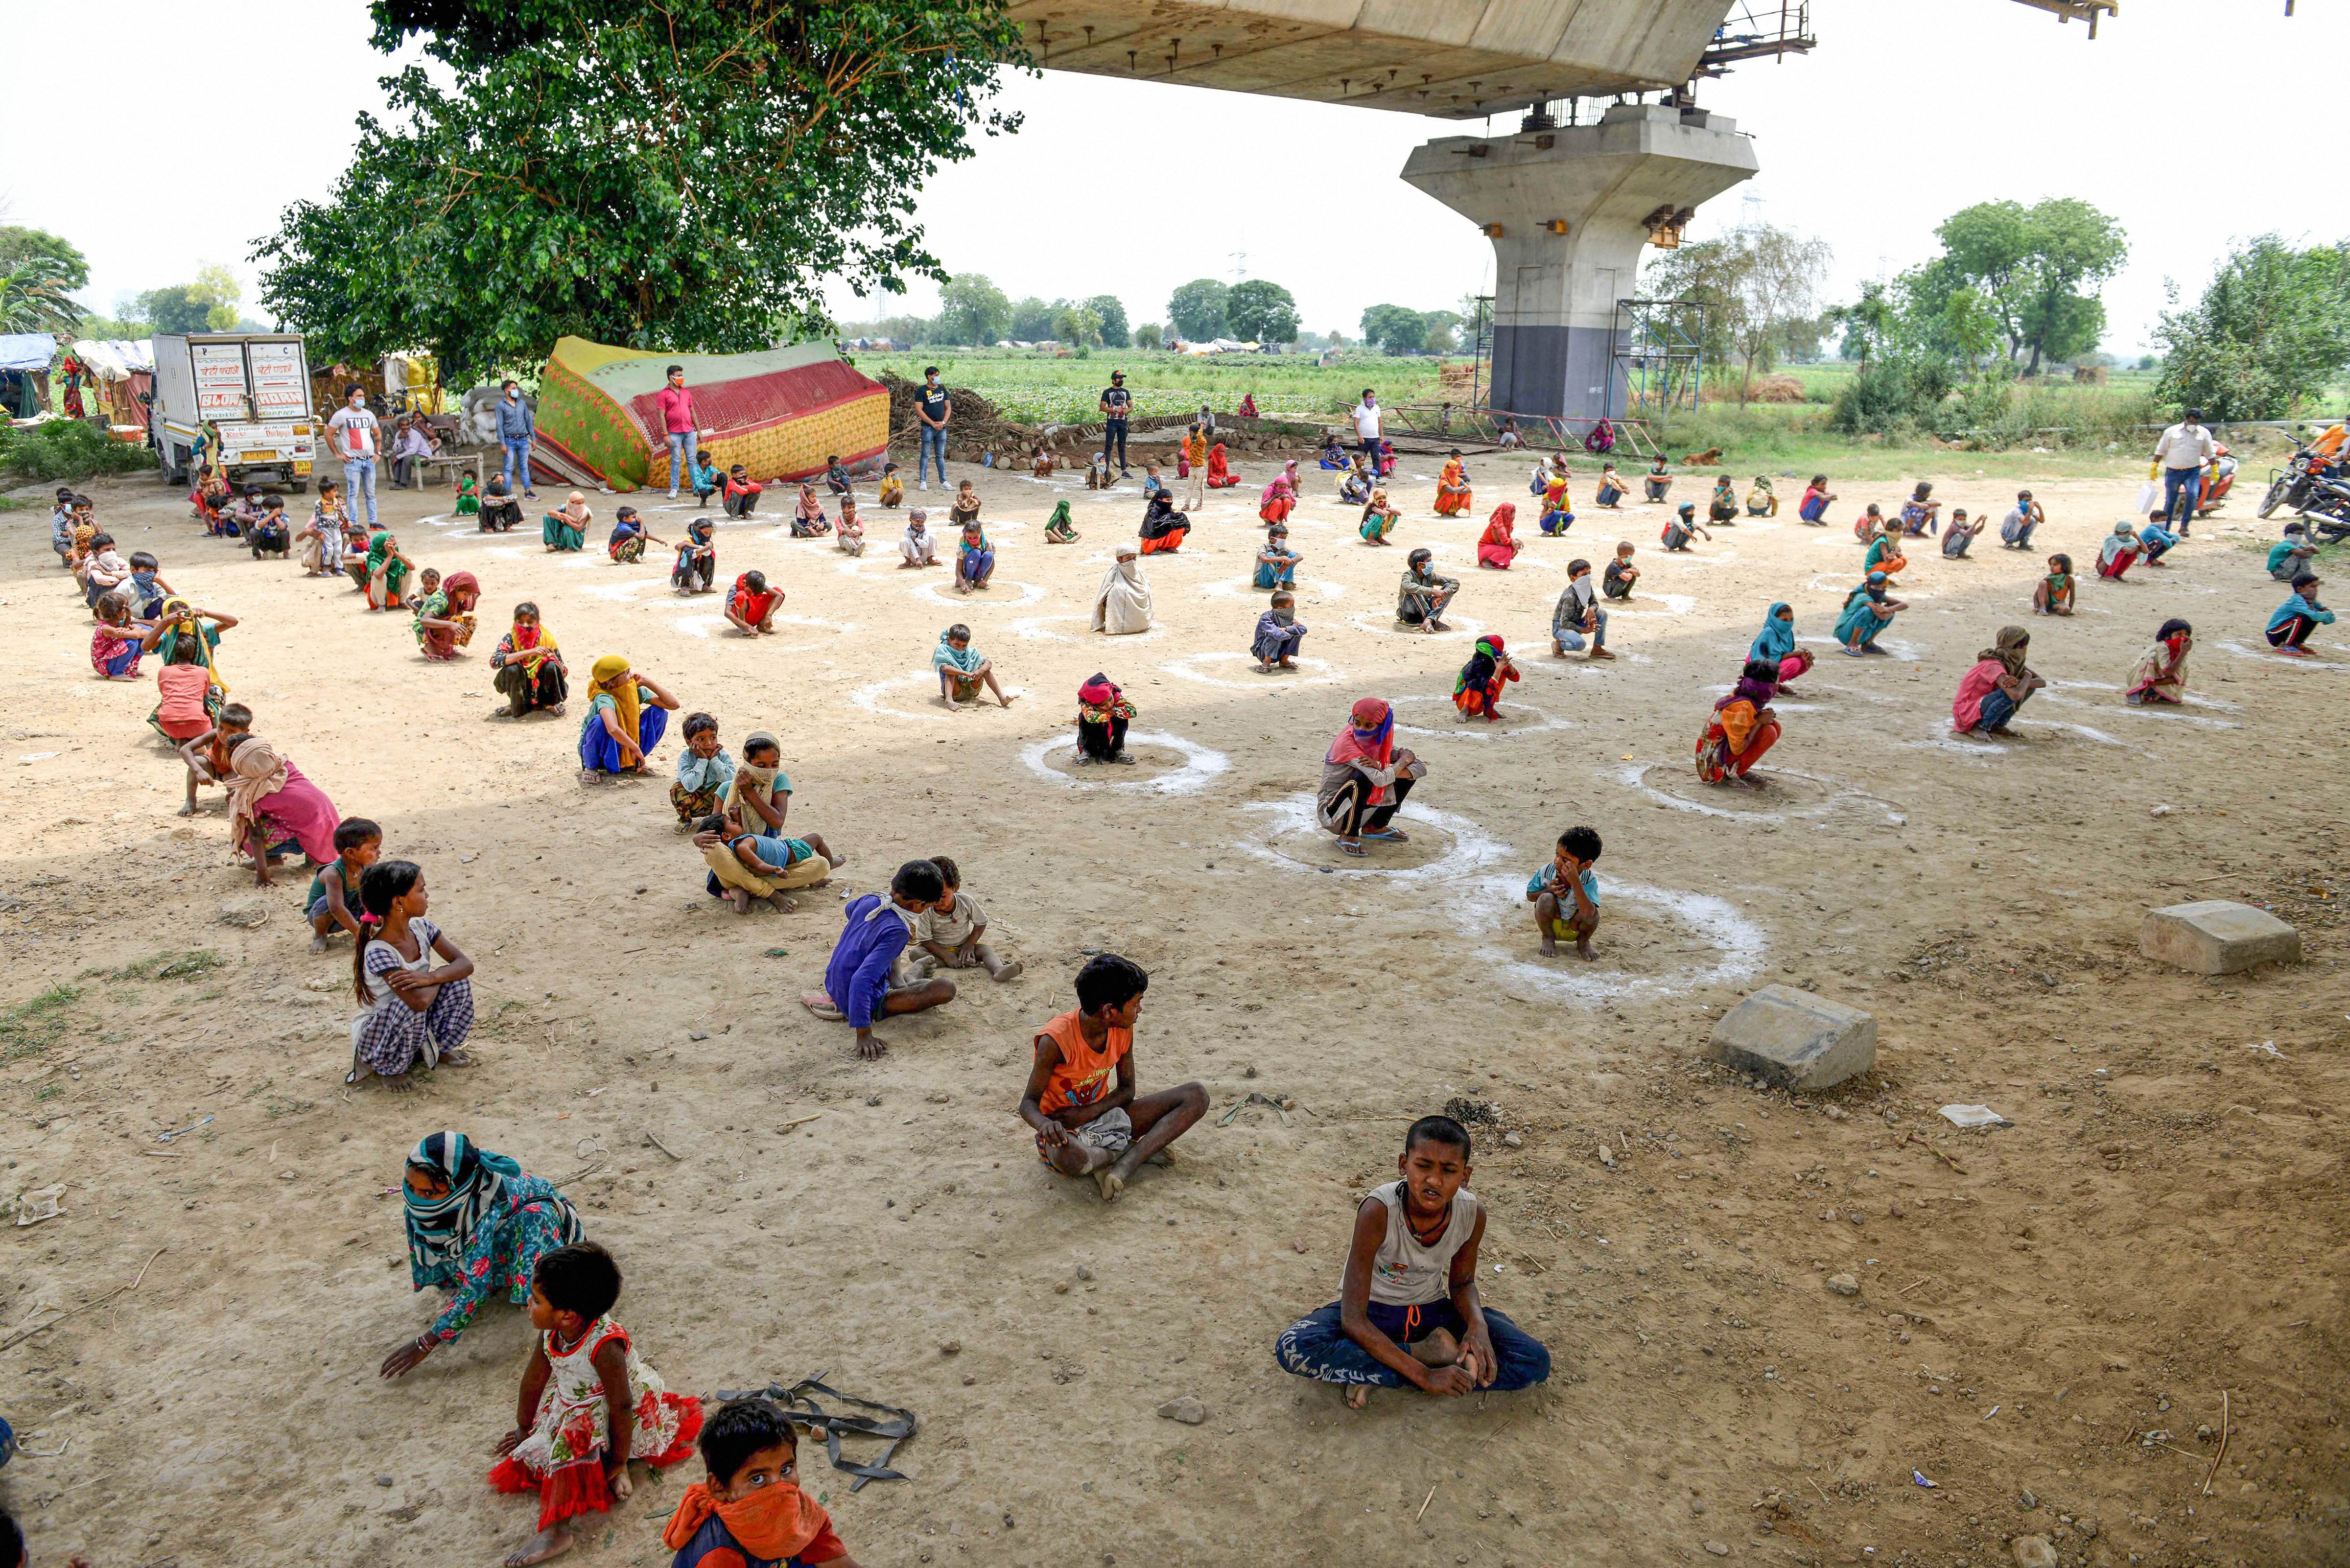 Children sit inside painted circles maintaining social distance during the food distribution by volunteers amid the ongoing nationwide Covid-19 lockdown, in New Delhi, Monday, May 11, 2020